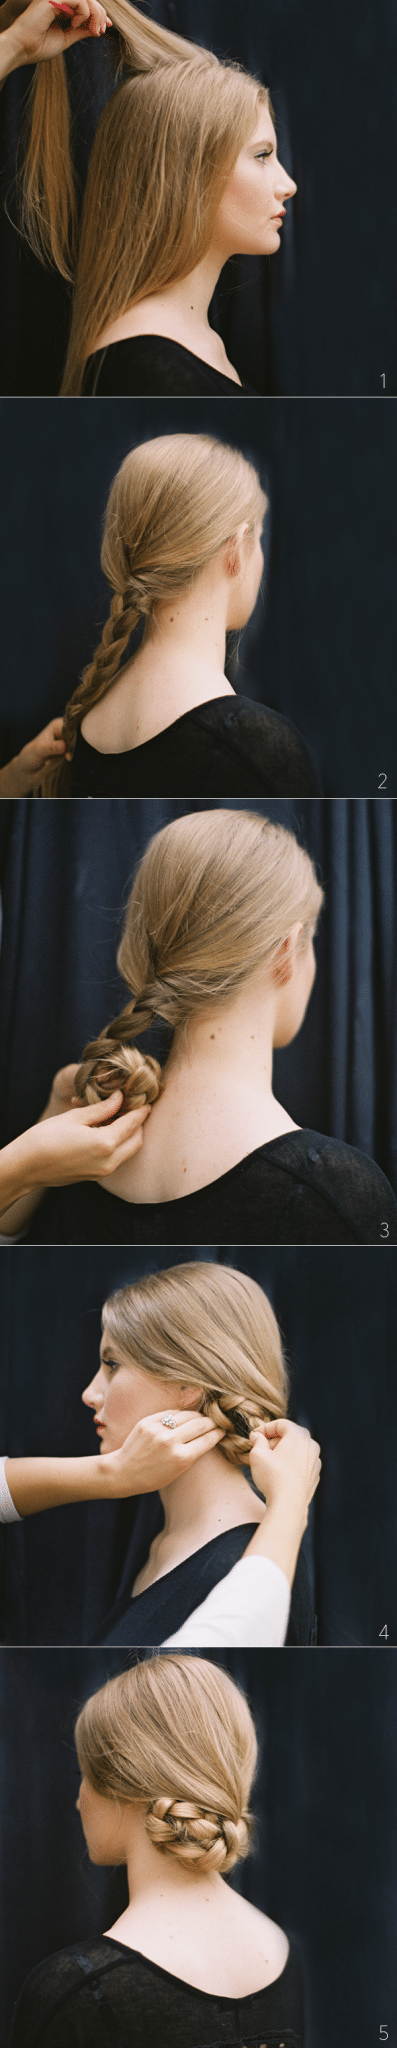 Bun hairstyles with fishtail bun.